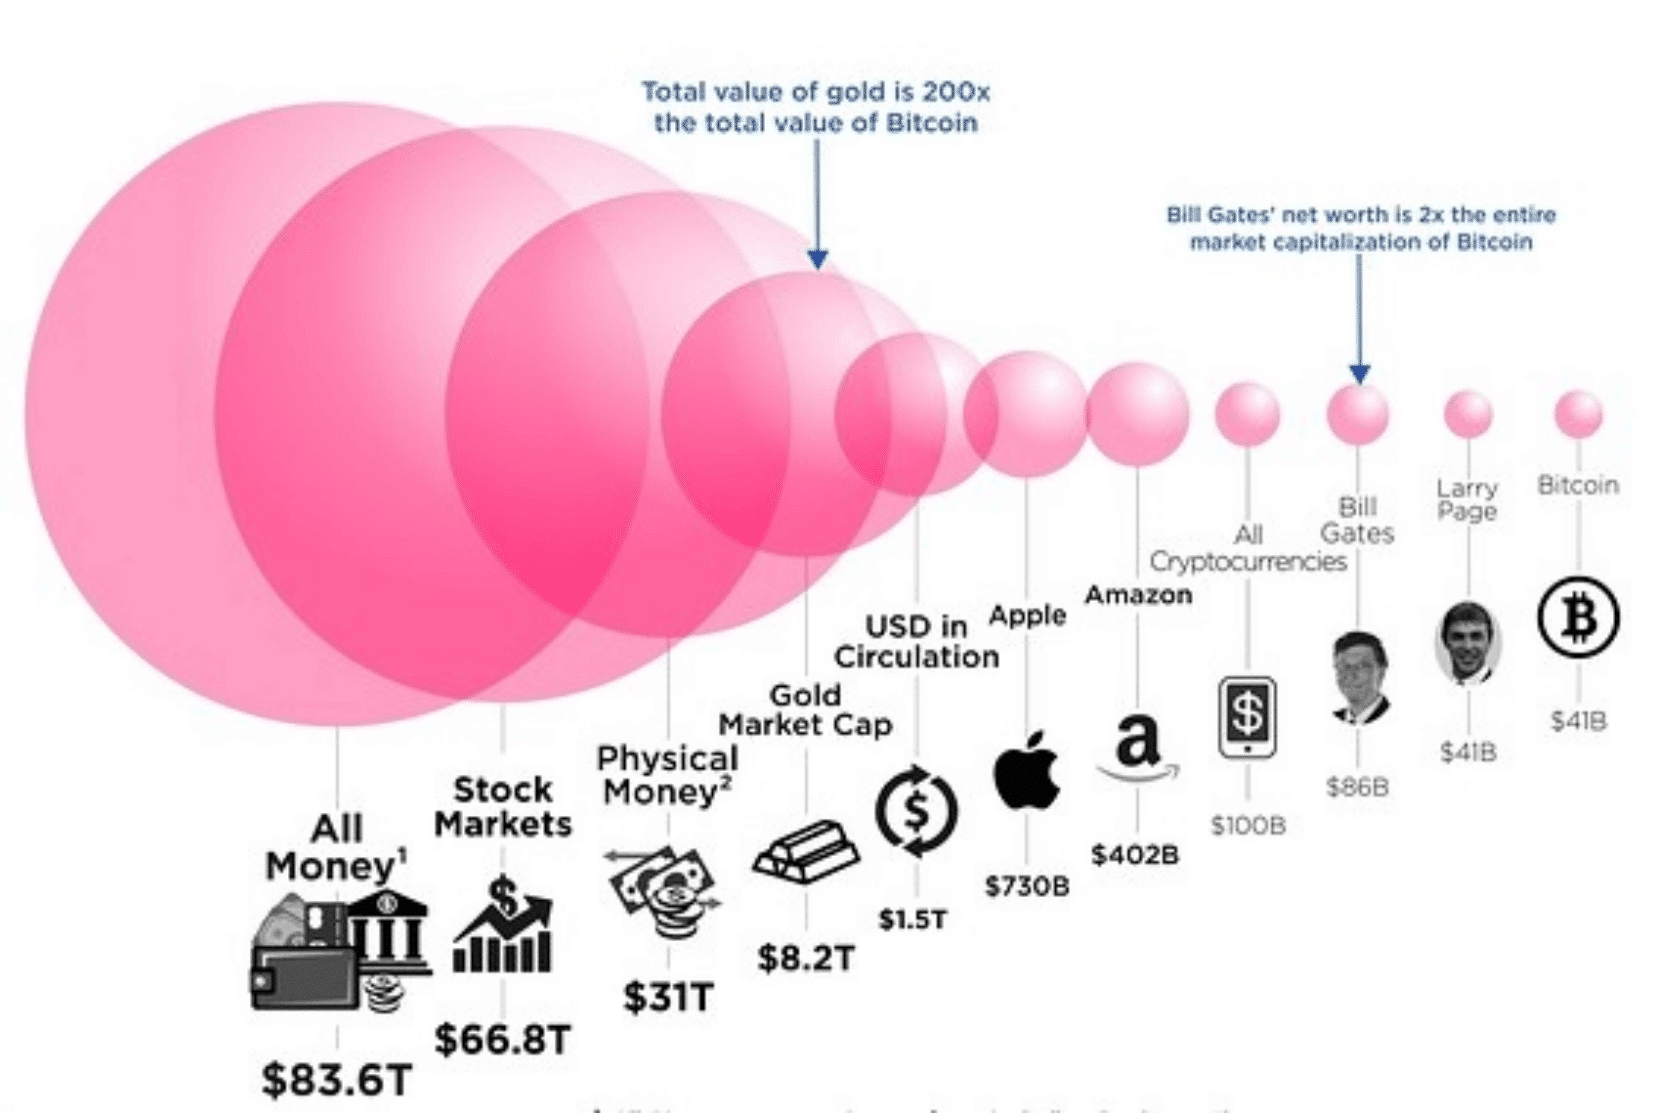 Total market cap of different assets - bitcoin